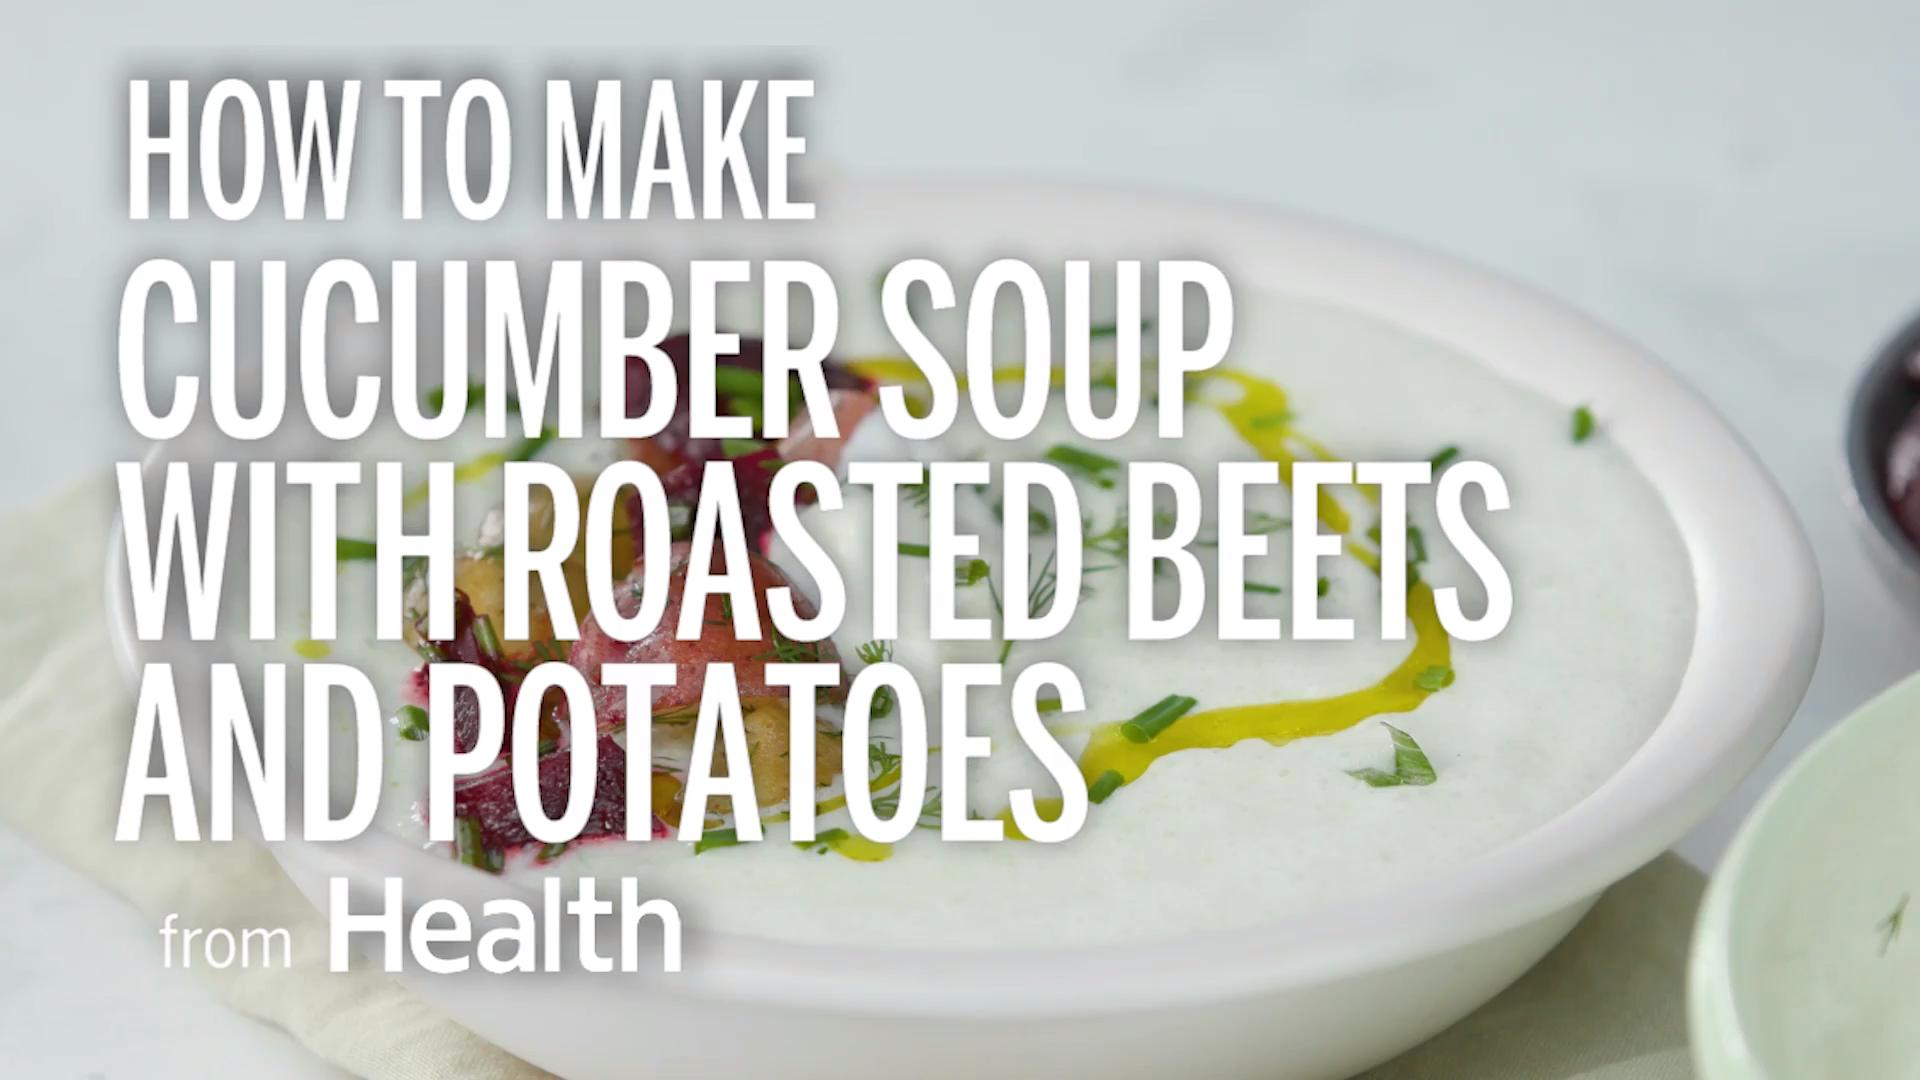 Cucumber Soup With Roasted Beet and Potatoes